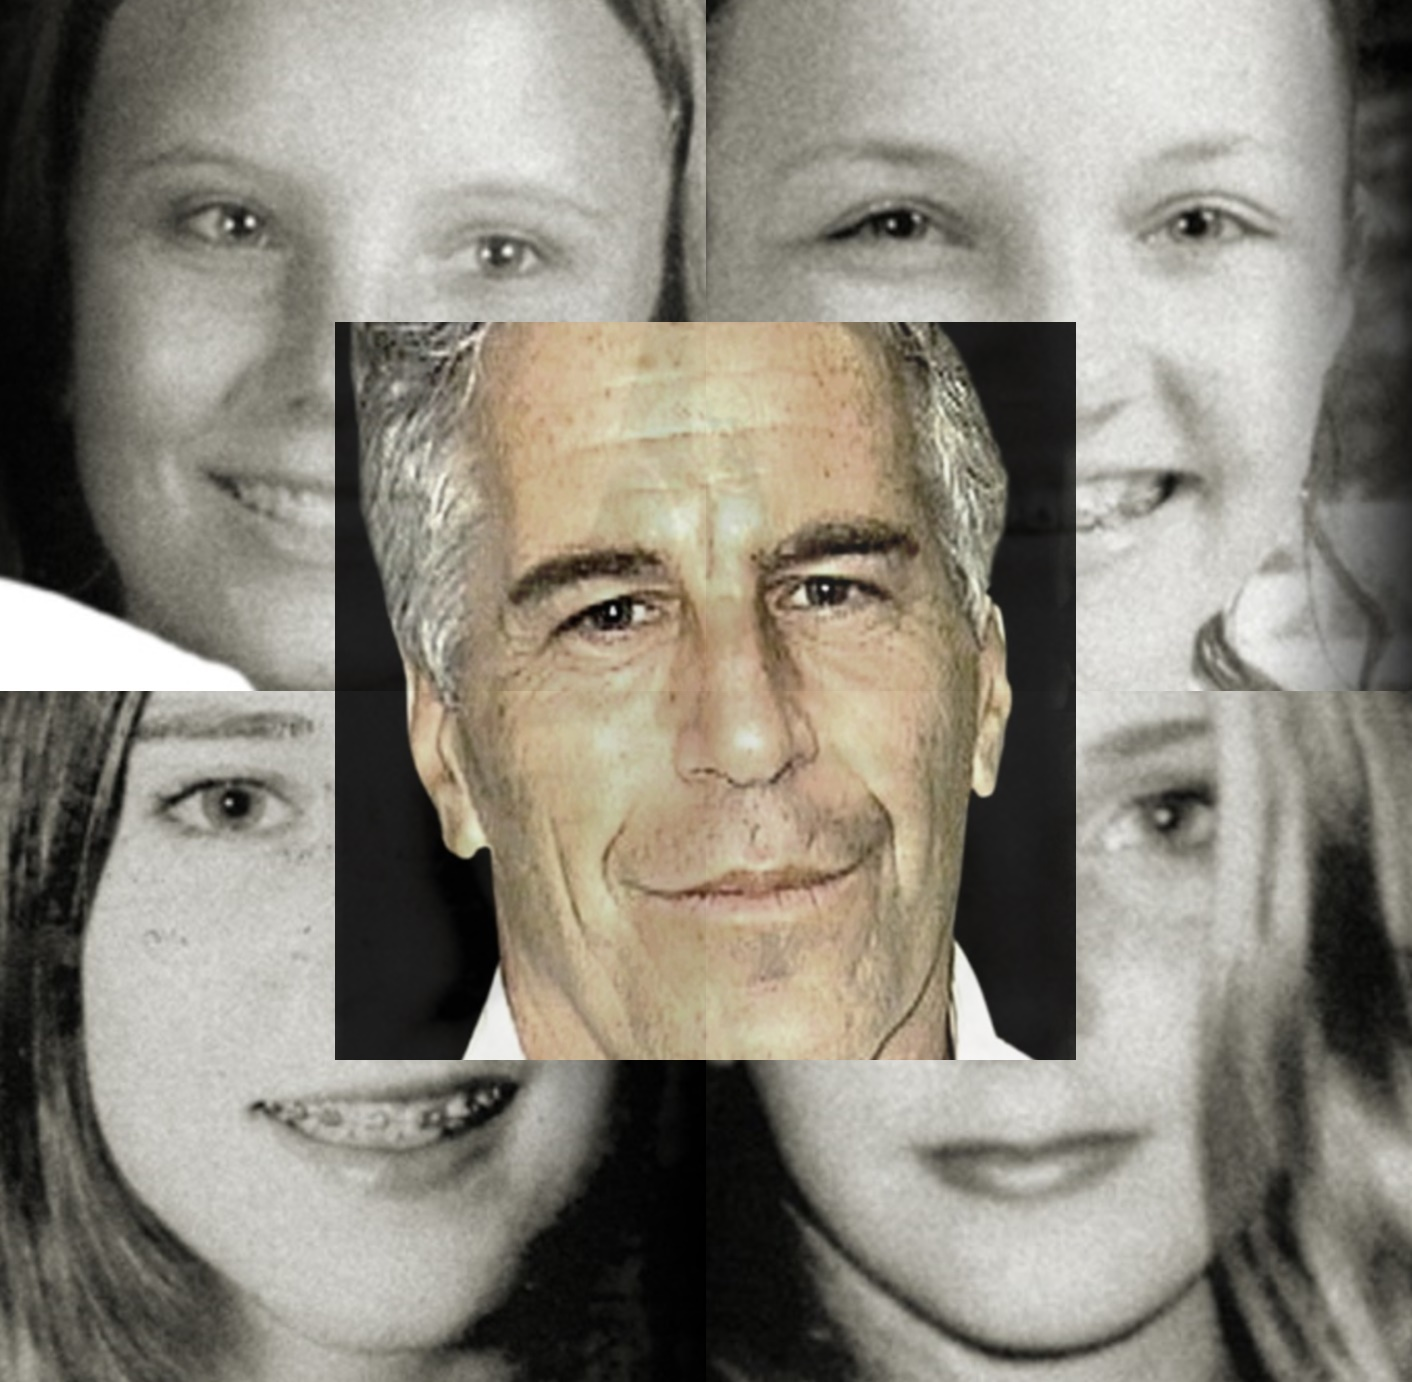 Accusers Speak Out After Jeffrey Epstein Charged With Sex Trafficking; Bill Clinton Releases Statement On His Relationship With Epstein